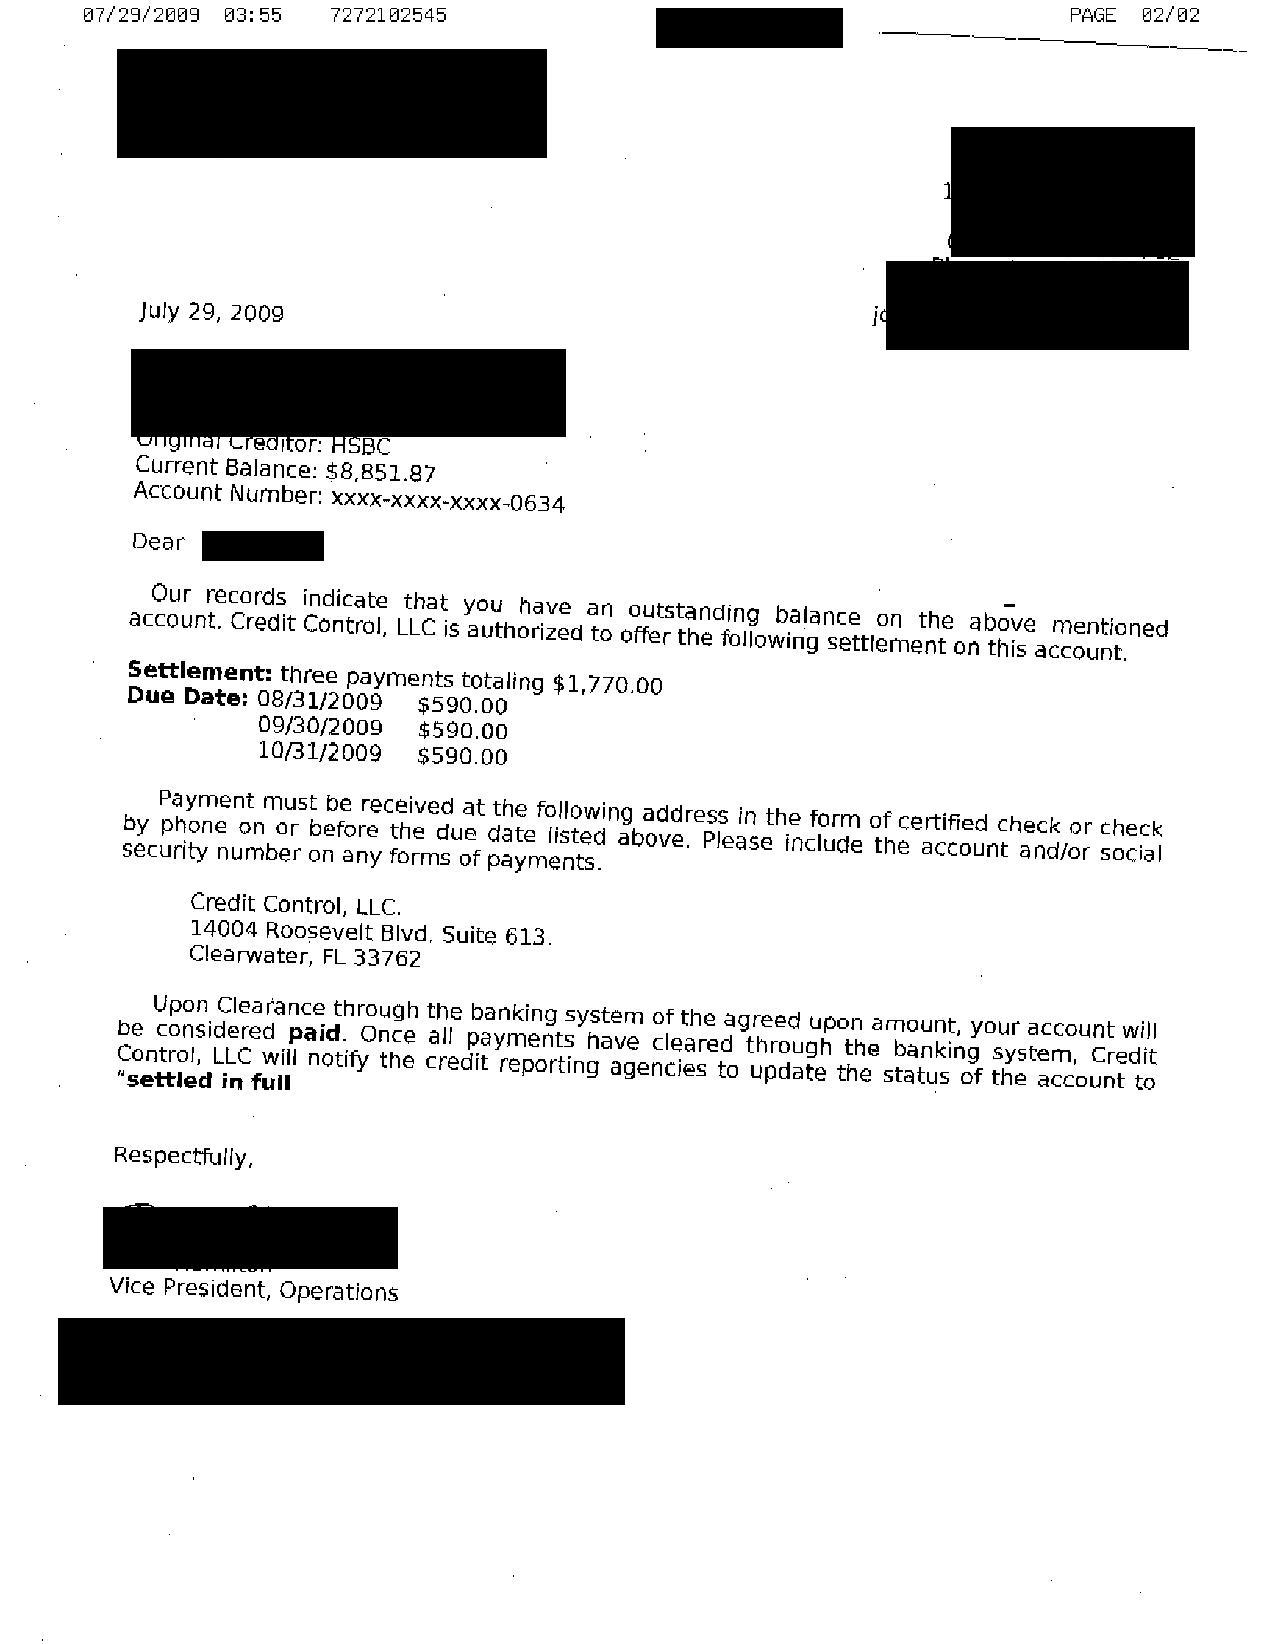 HSBC Debt Settlement Letter Saved $7081